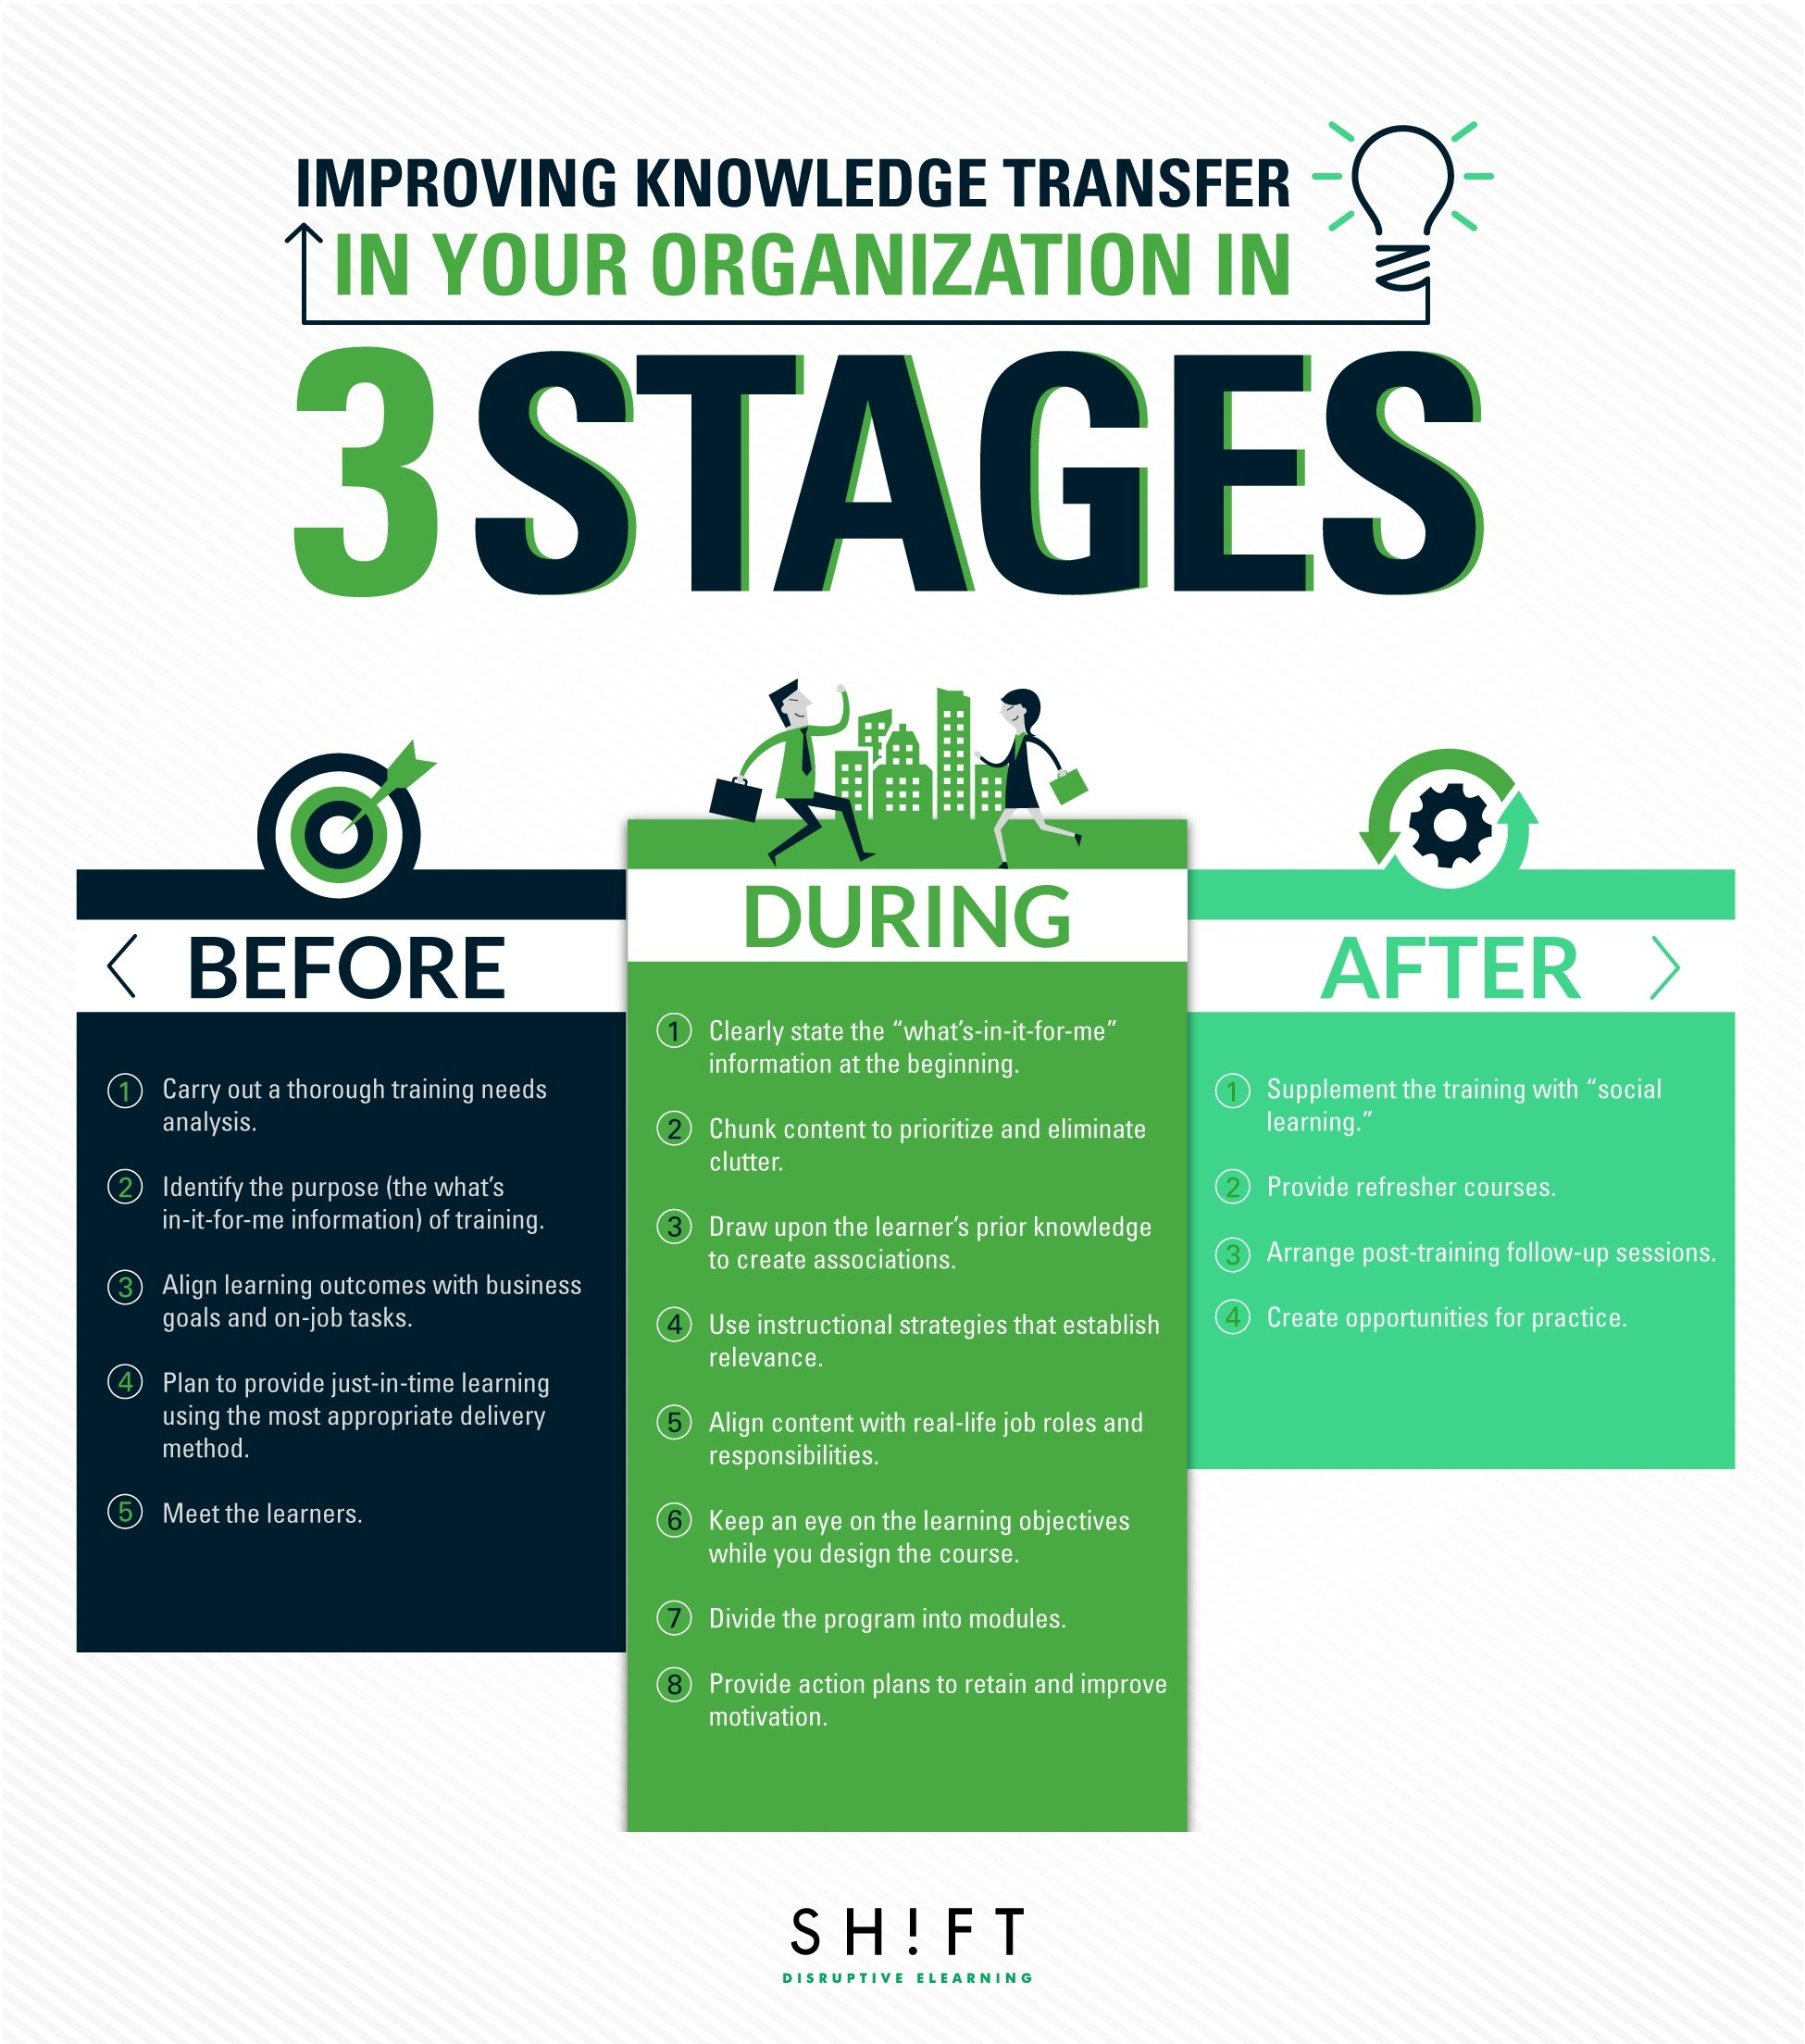 Before, During, and After Training: Improving Knowledge